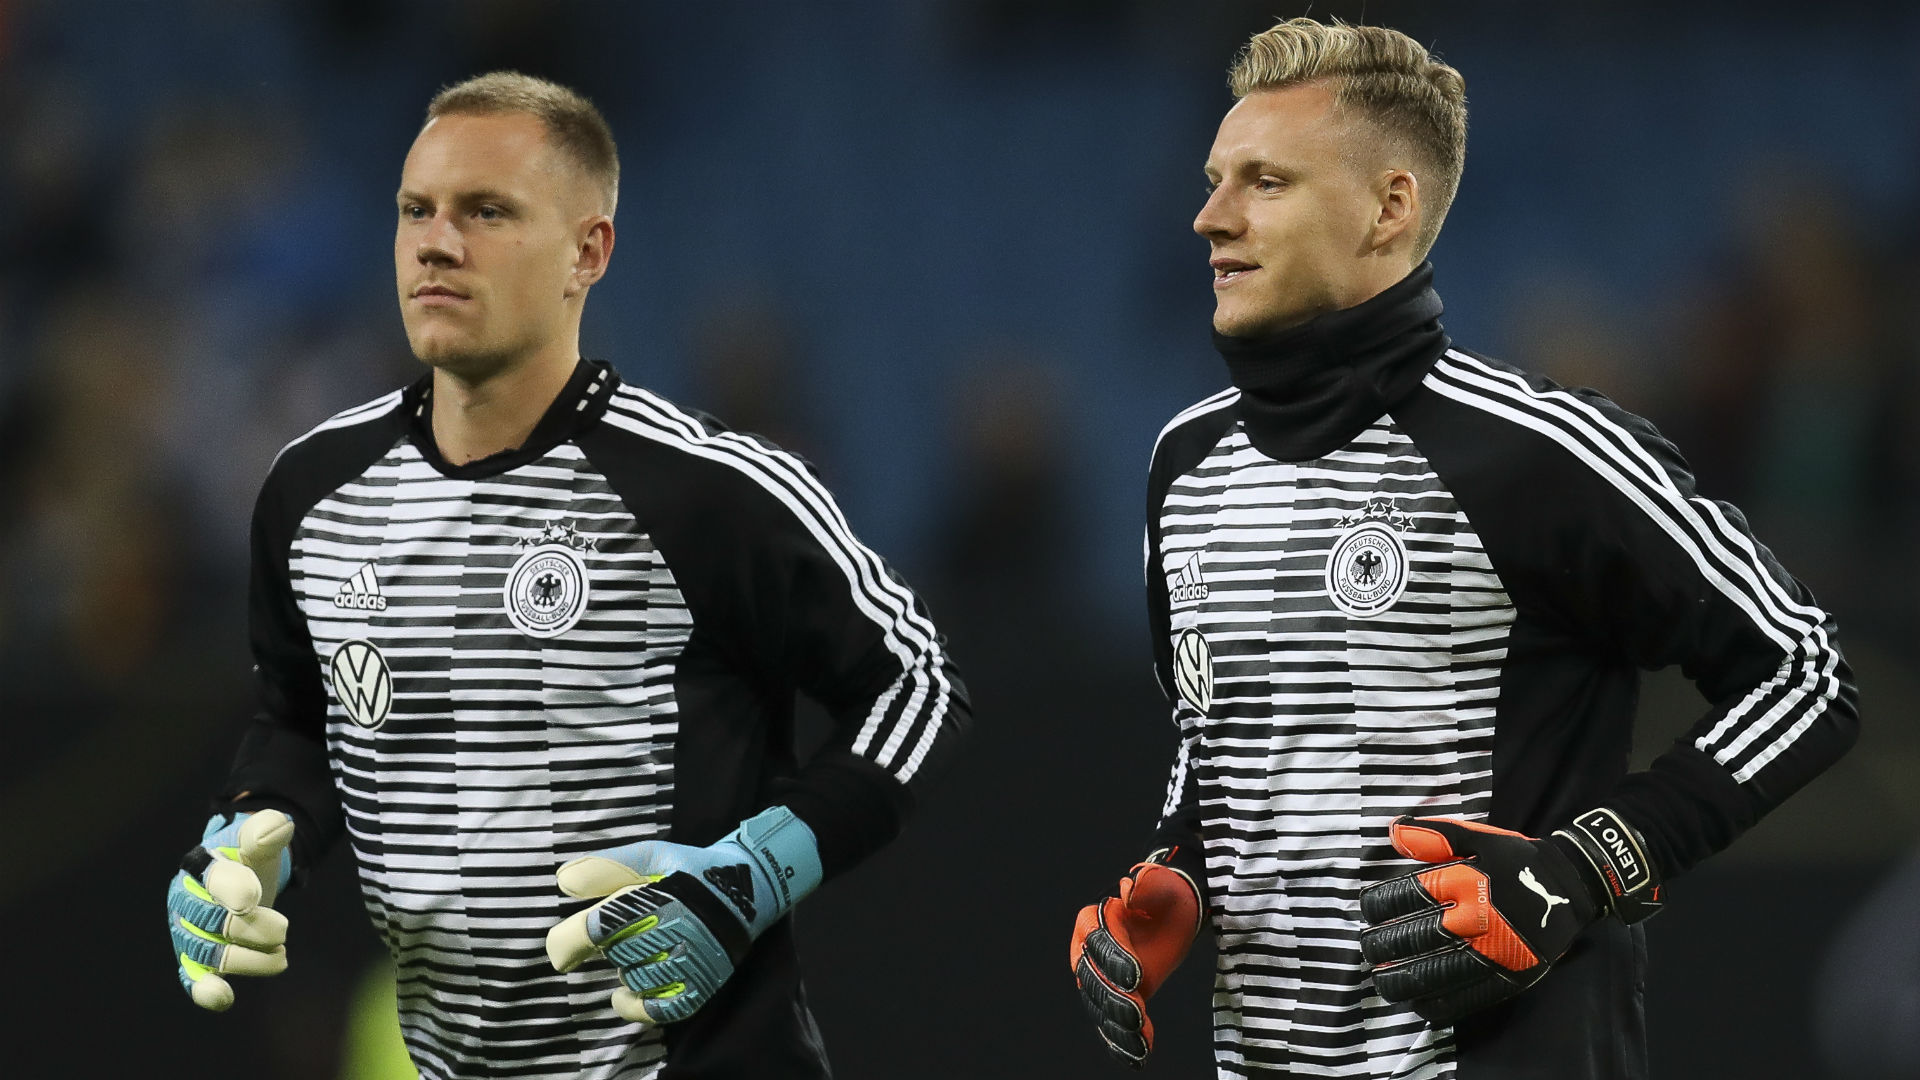 'Playing in same academy as Ter Stegen and Leno helped me' – Nigeria's Okoye